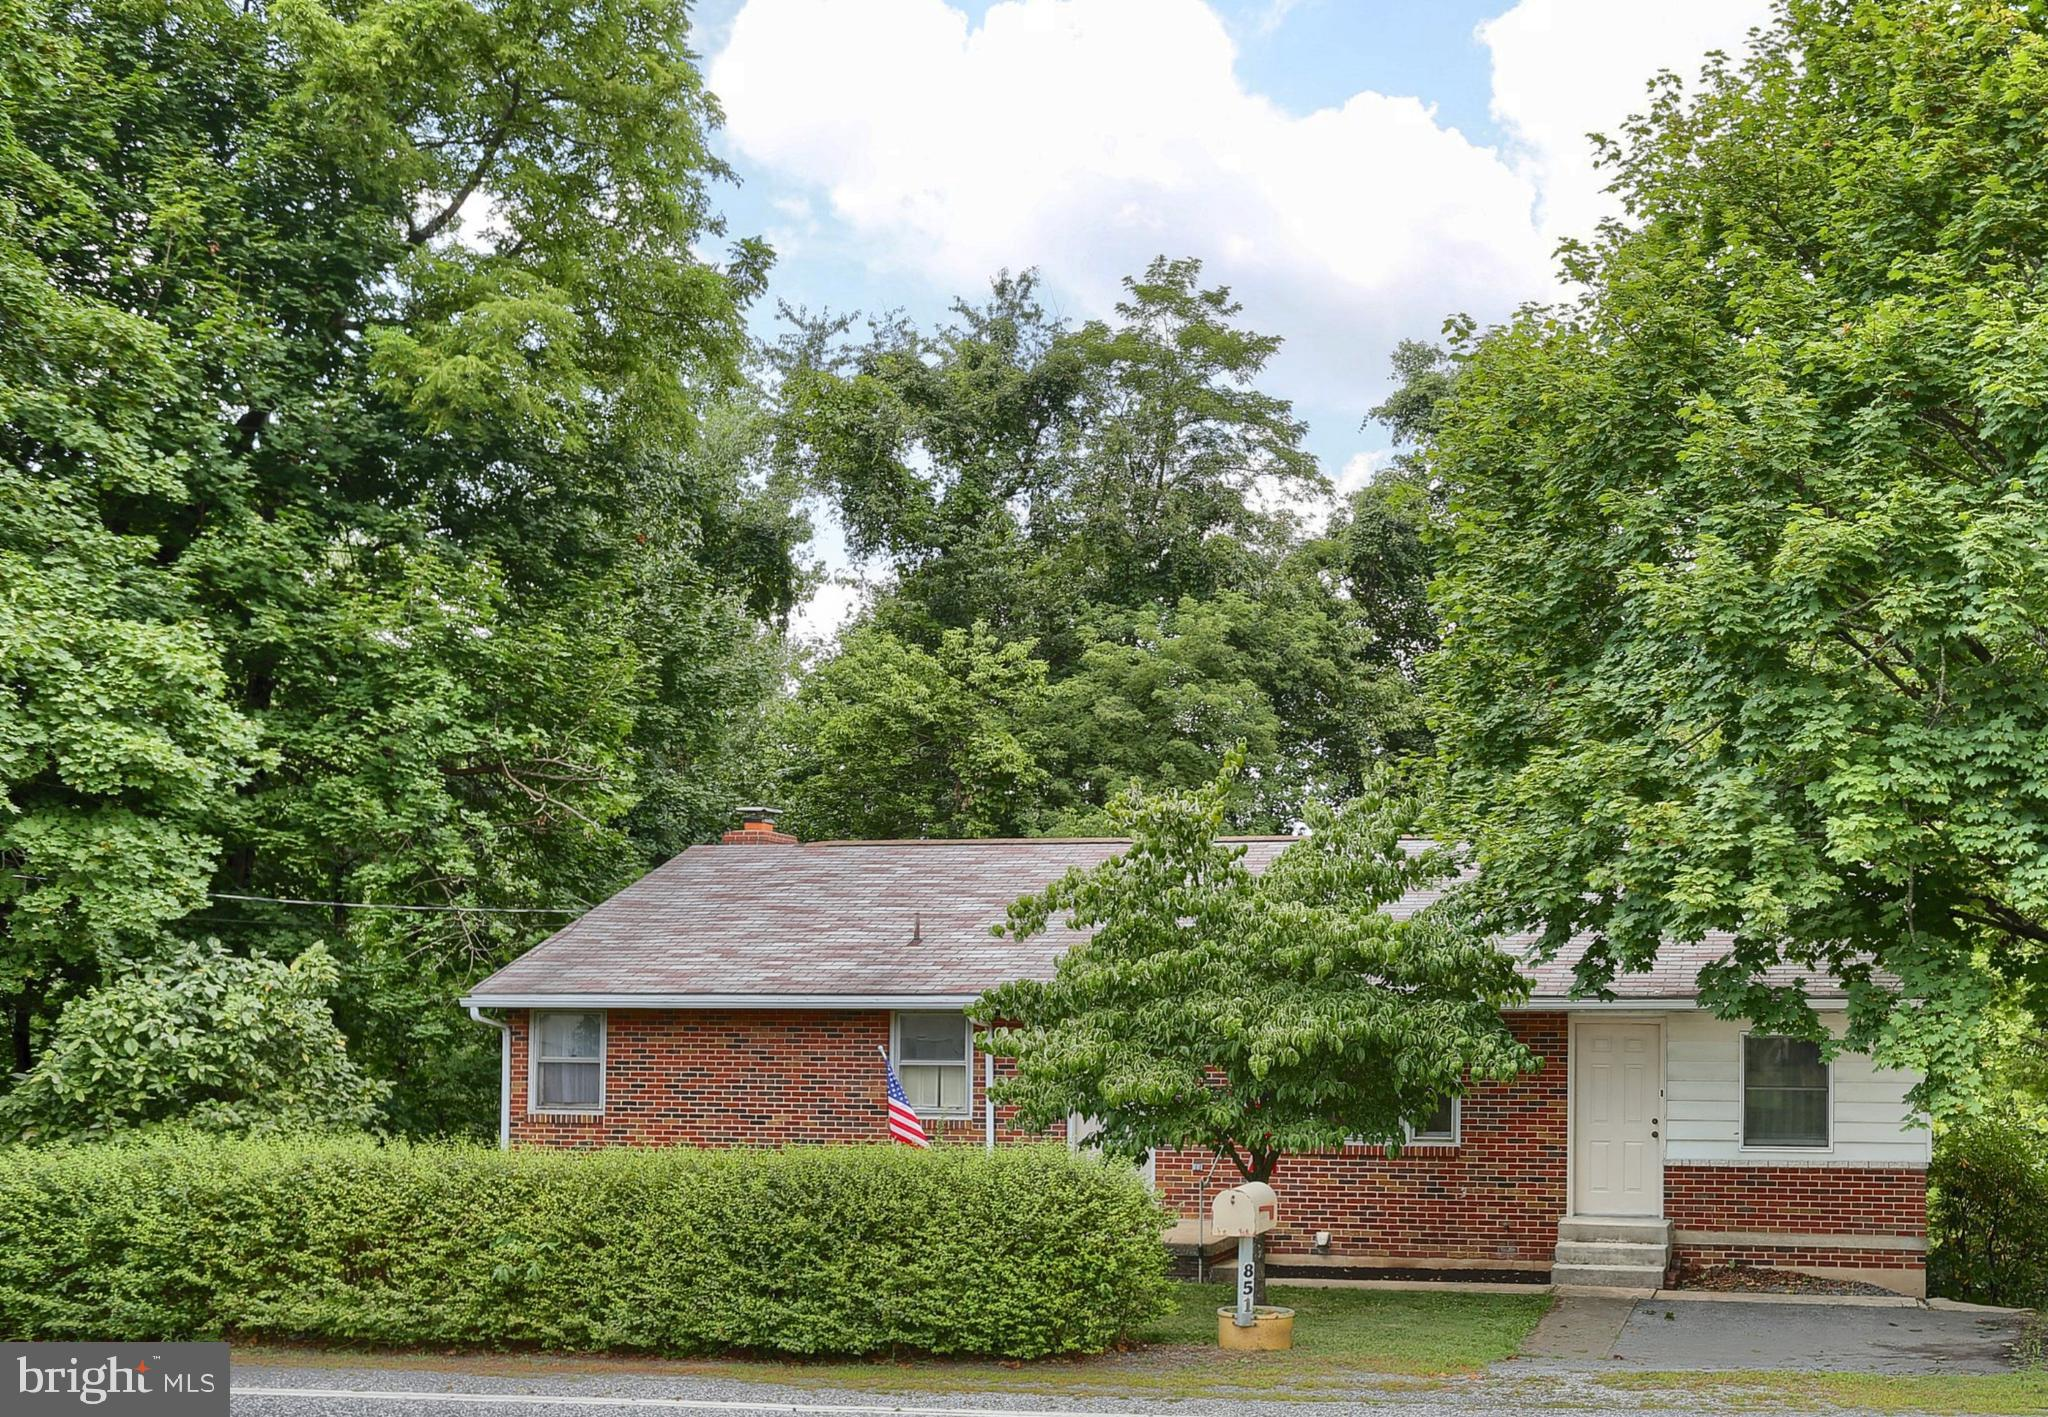 851 LEWISBERRY ROAD, LEWISBERRY, PA 17339